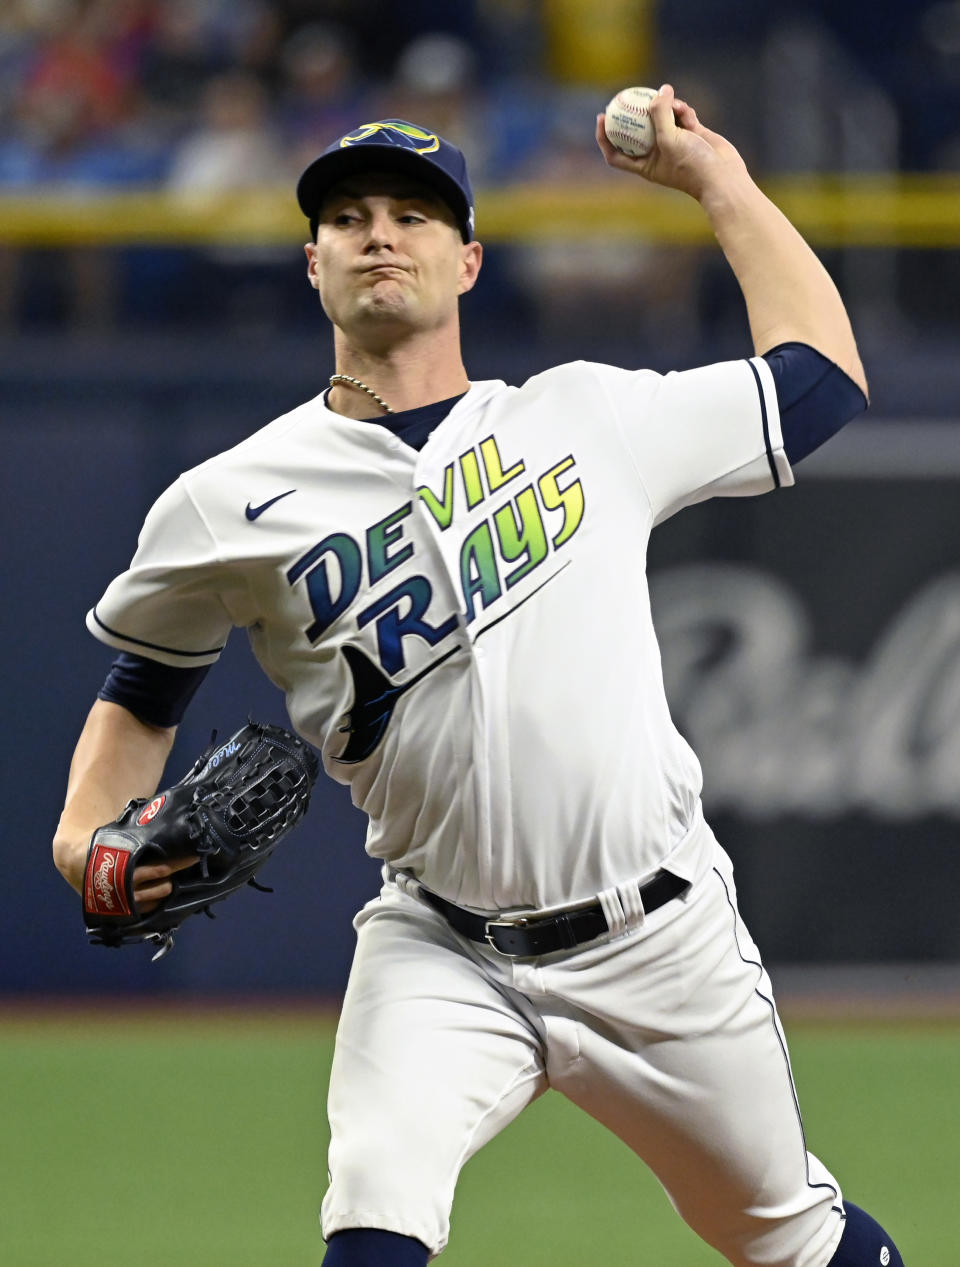 Tampa Bay Rays starter Shane McClanahan pitches against the Miami Marlins during the first inning of a baseball game Saturday, Sept. 25, 2021, in St. Petersburg, Fla. (AP Photo/Steve Nesius)